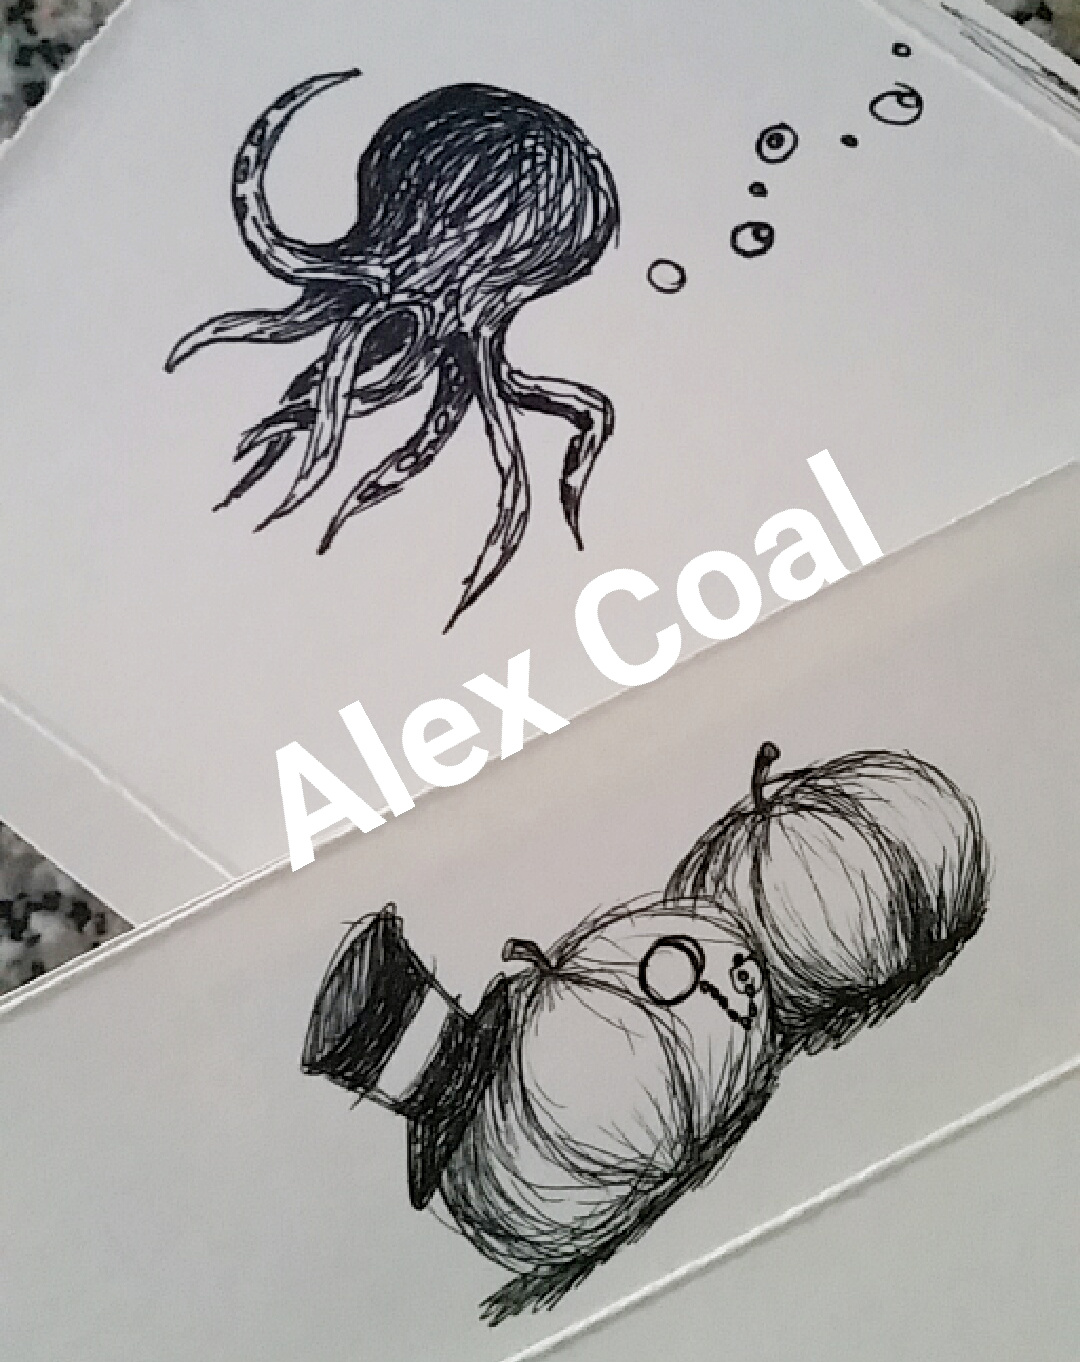 Alex Coal artwork